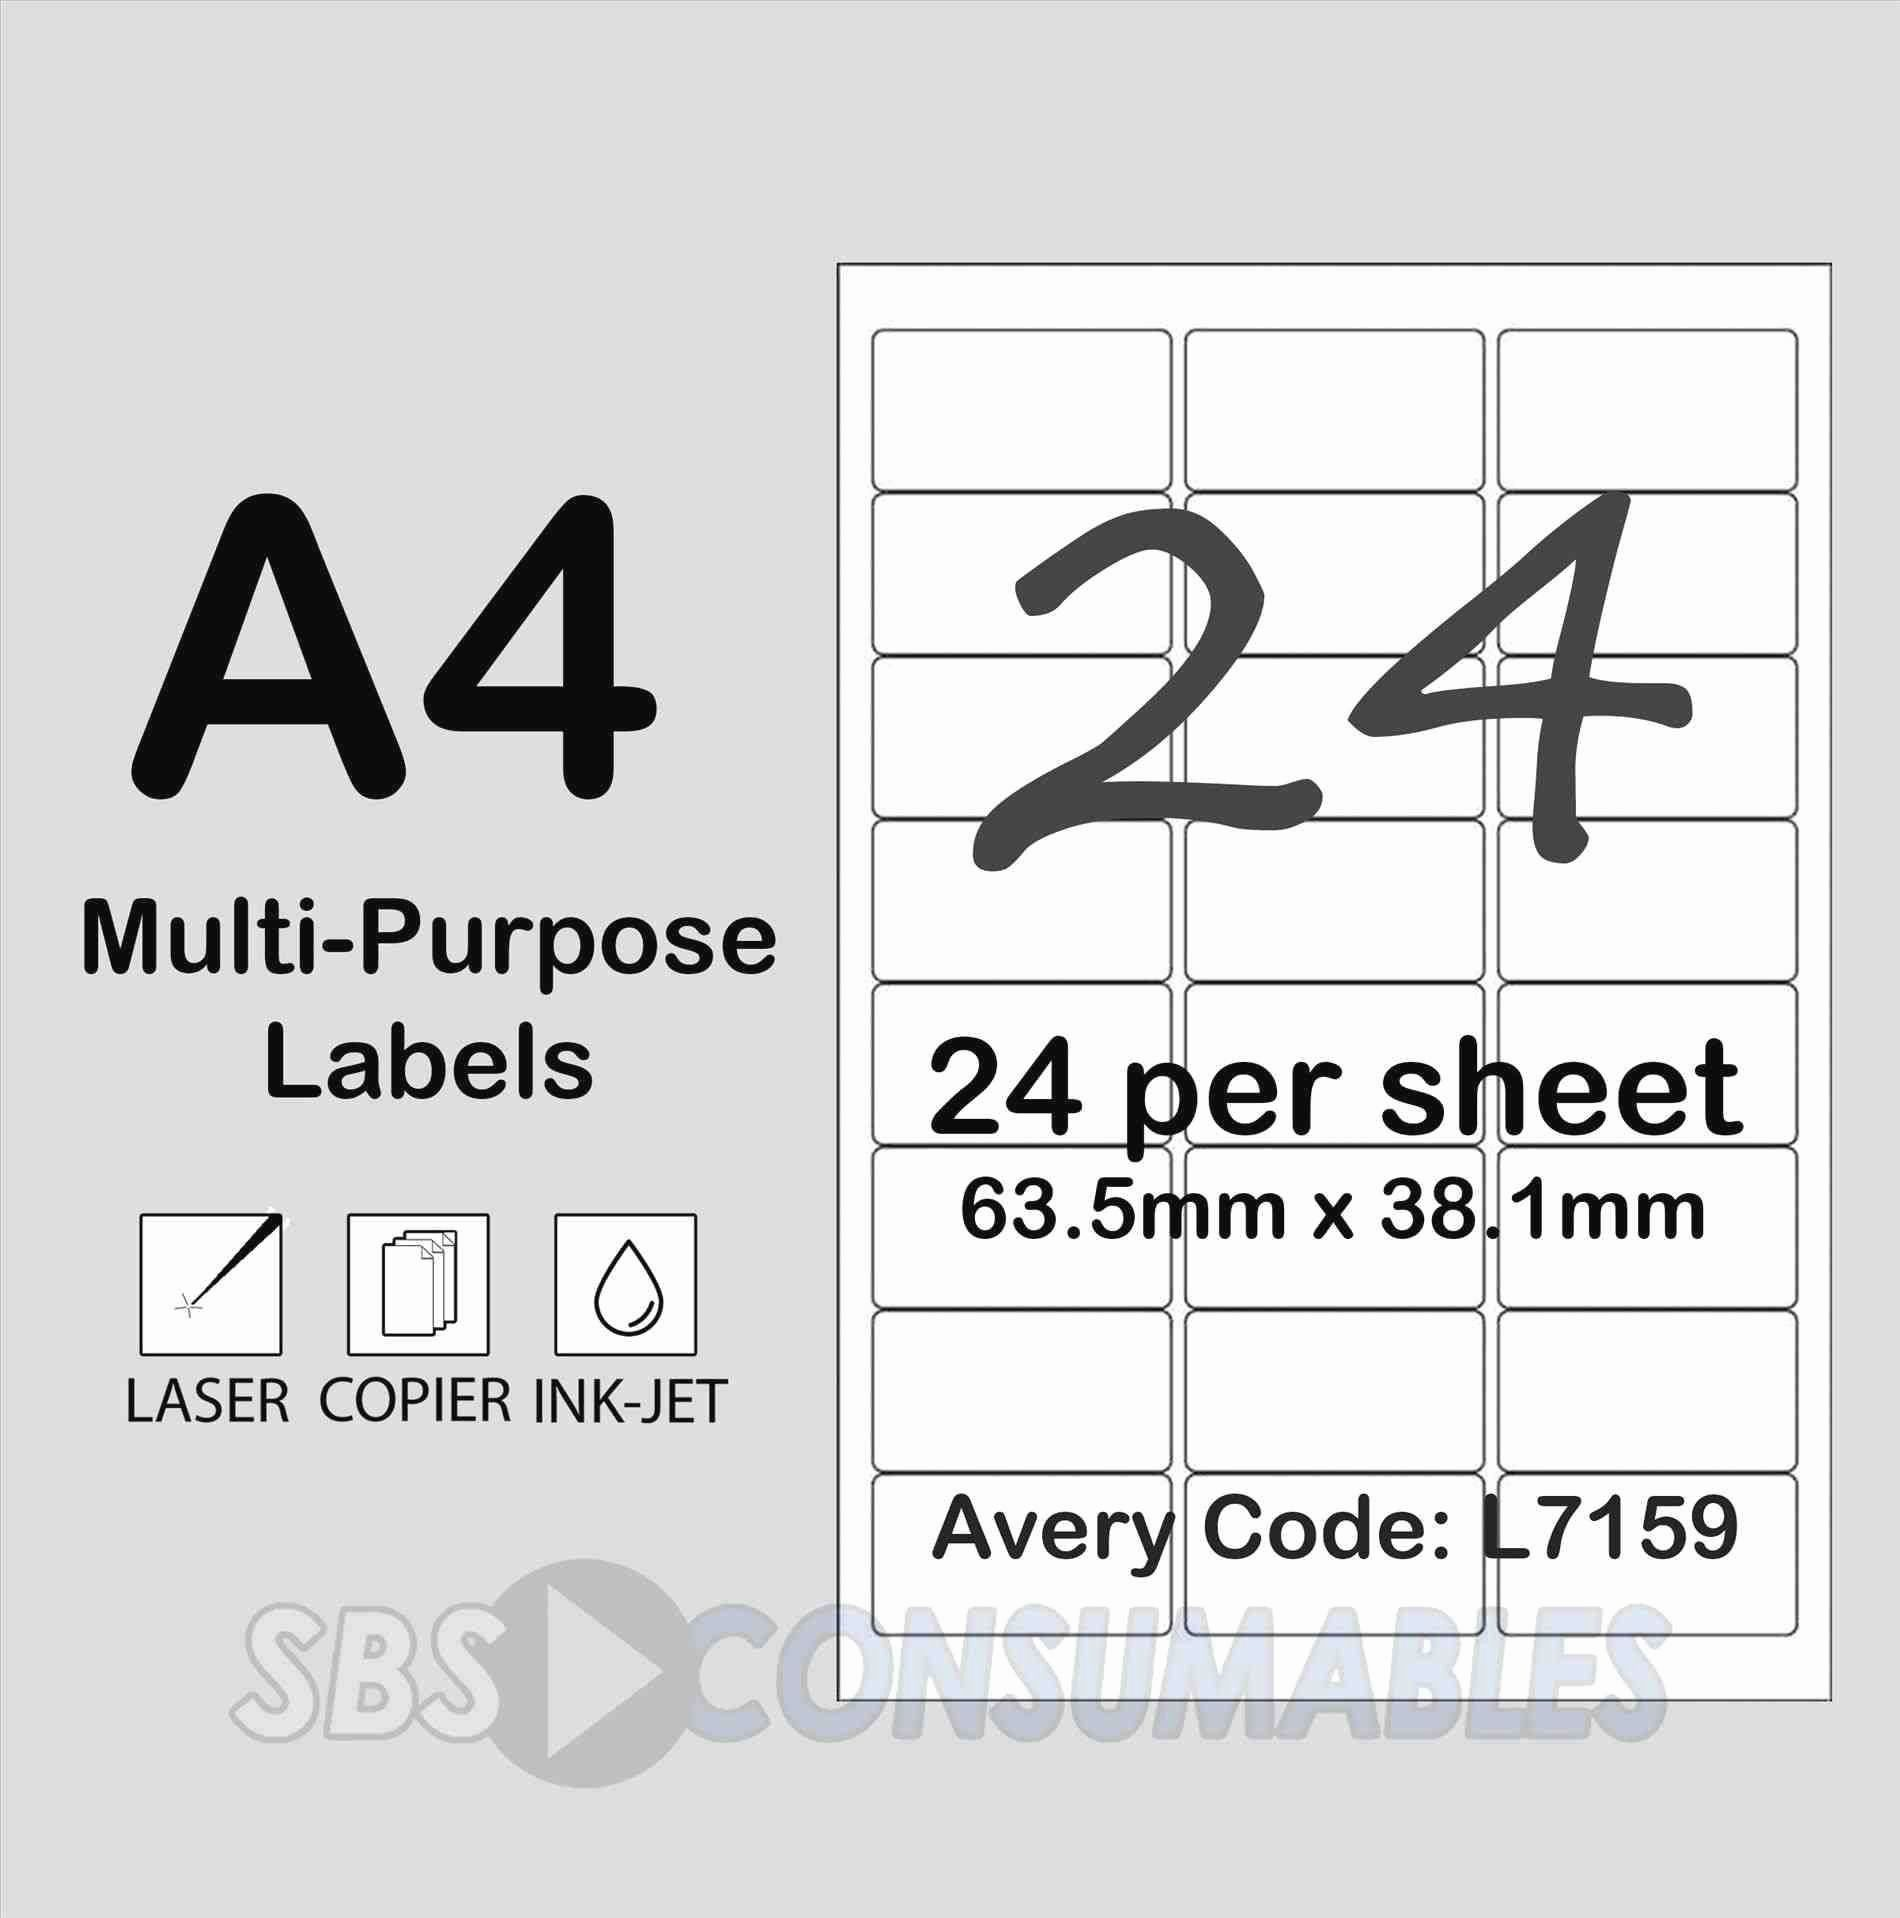 Avery Label Template 8366 New Inspirational Avery File Folder Labels Template 8593 File Folder Labels Label Templates Avery Label Templates